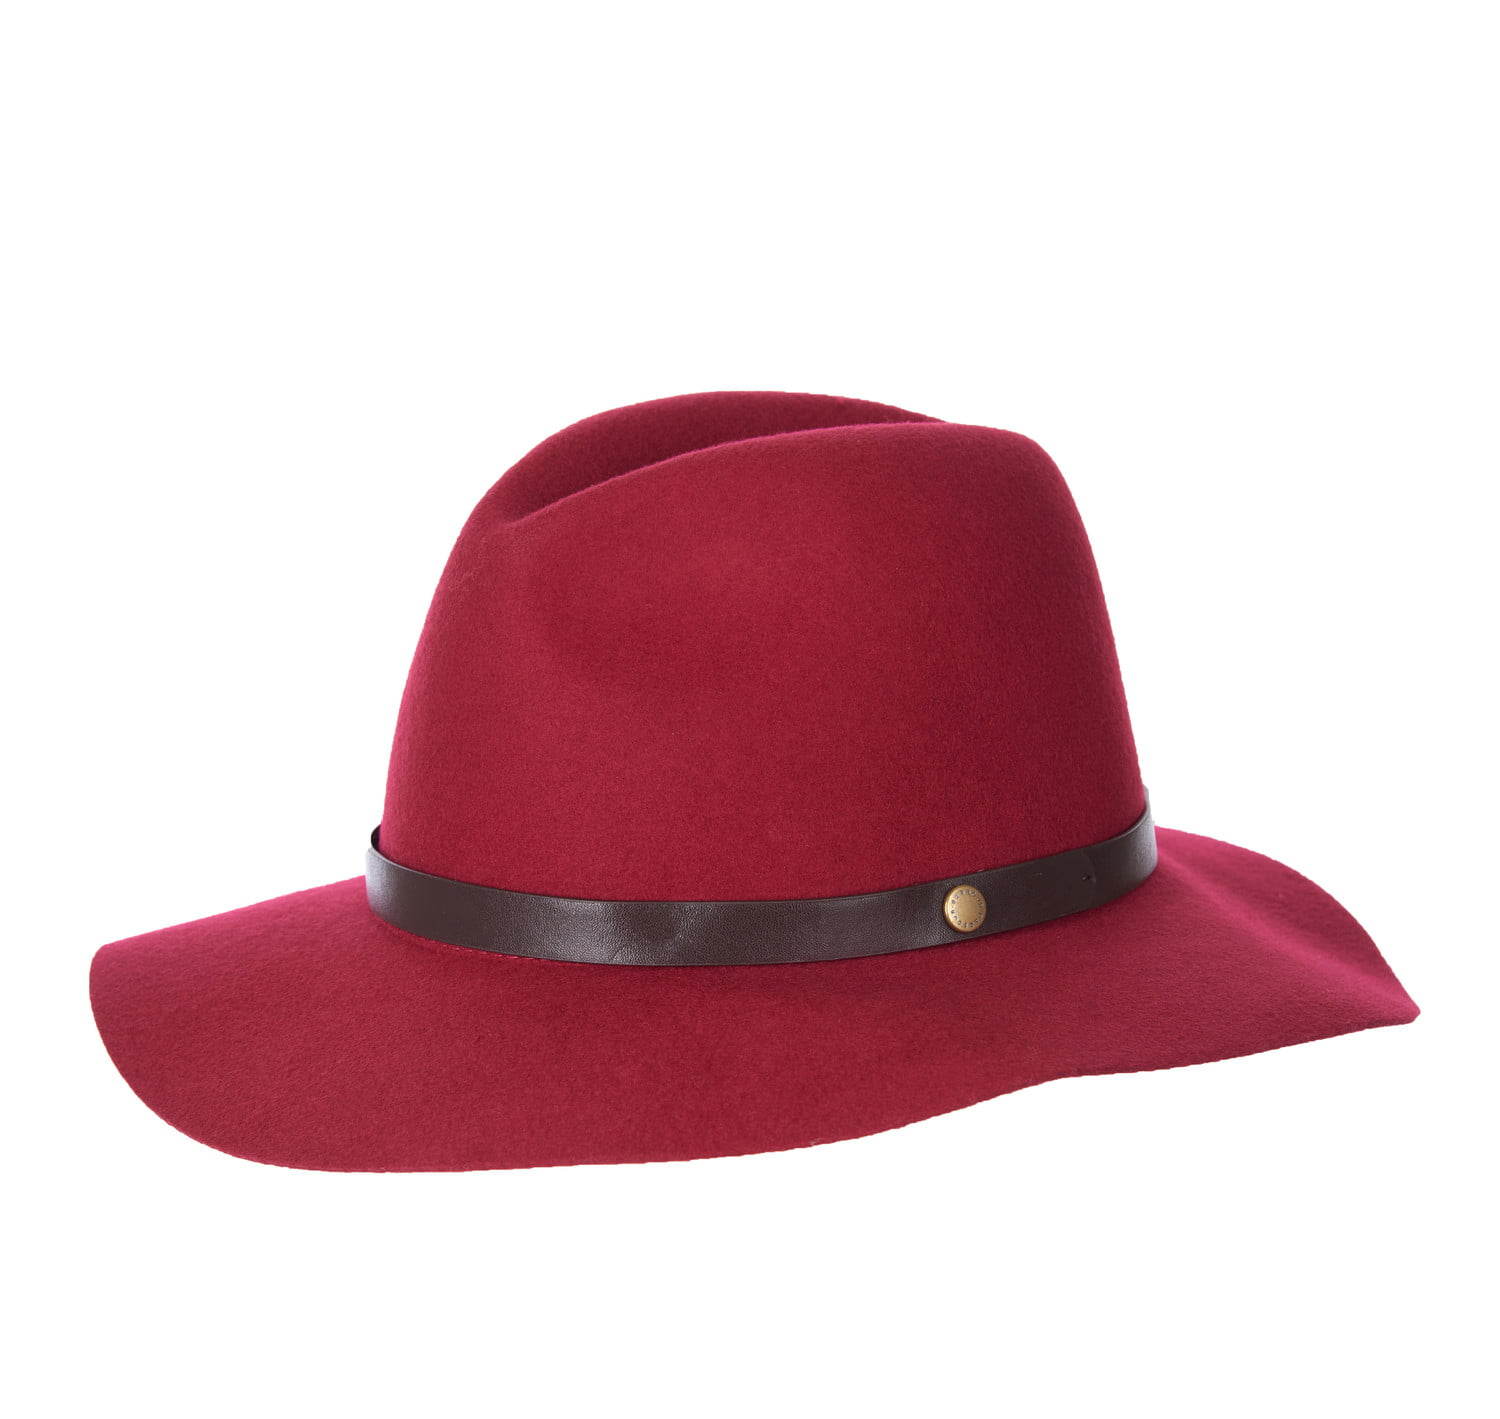 BARBOUR ANNADALE FEDORA HAT REDRE31_01front